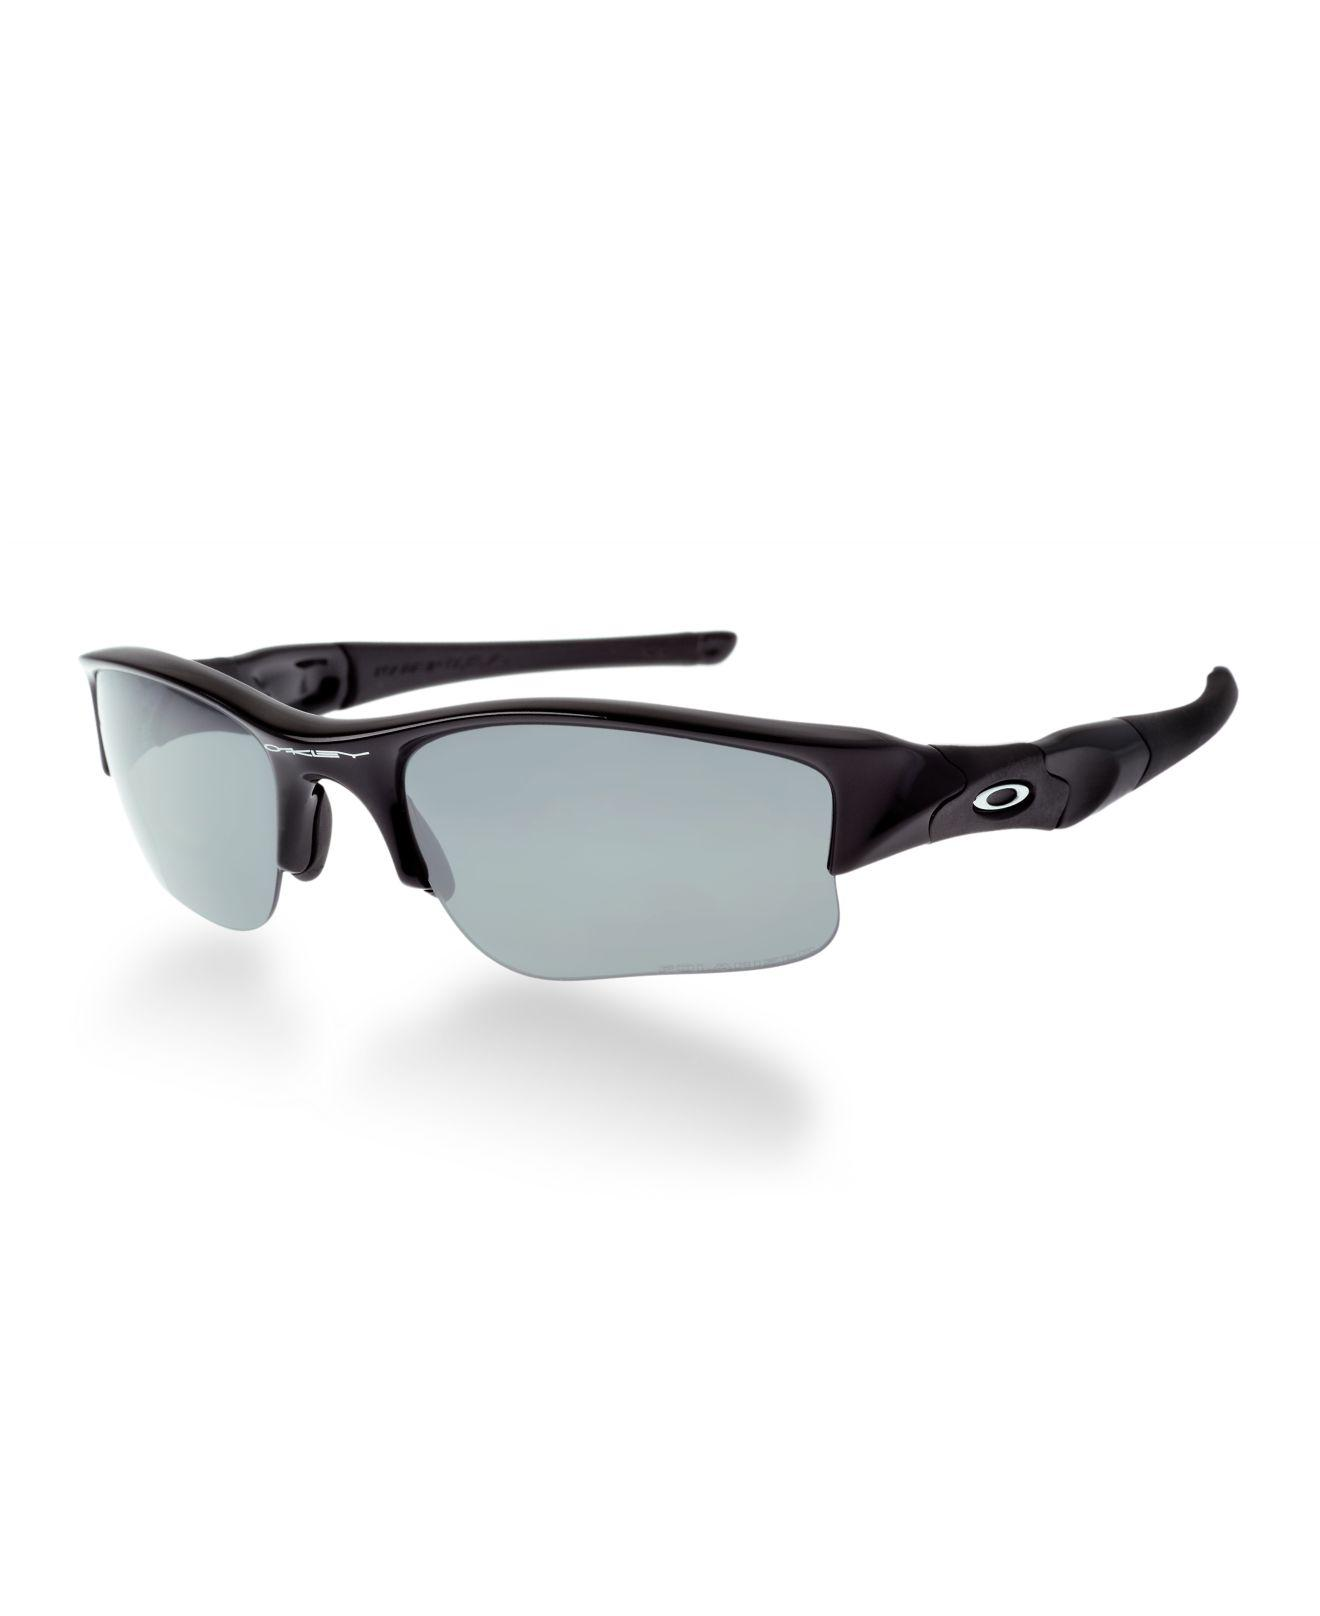 cc2a03d42b Oakley. Men s Black Sunglasses